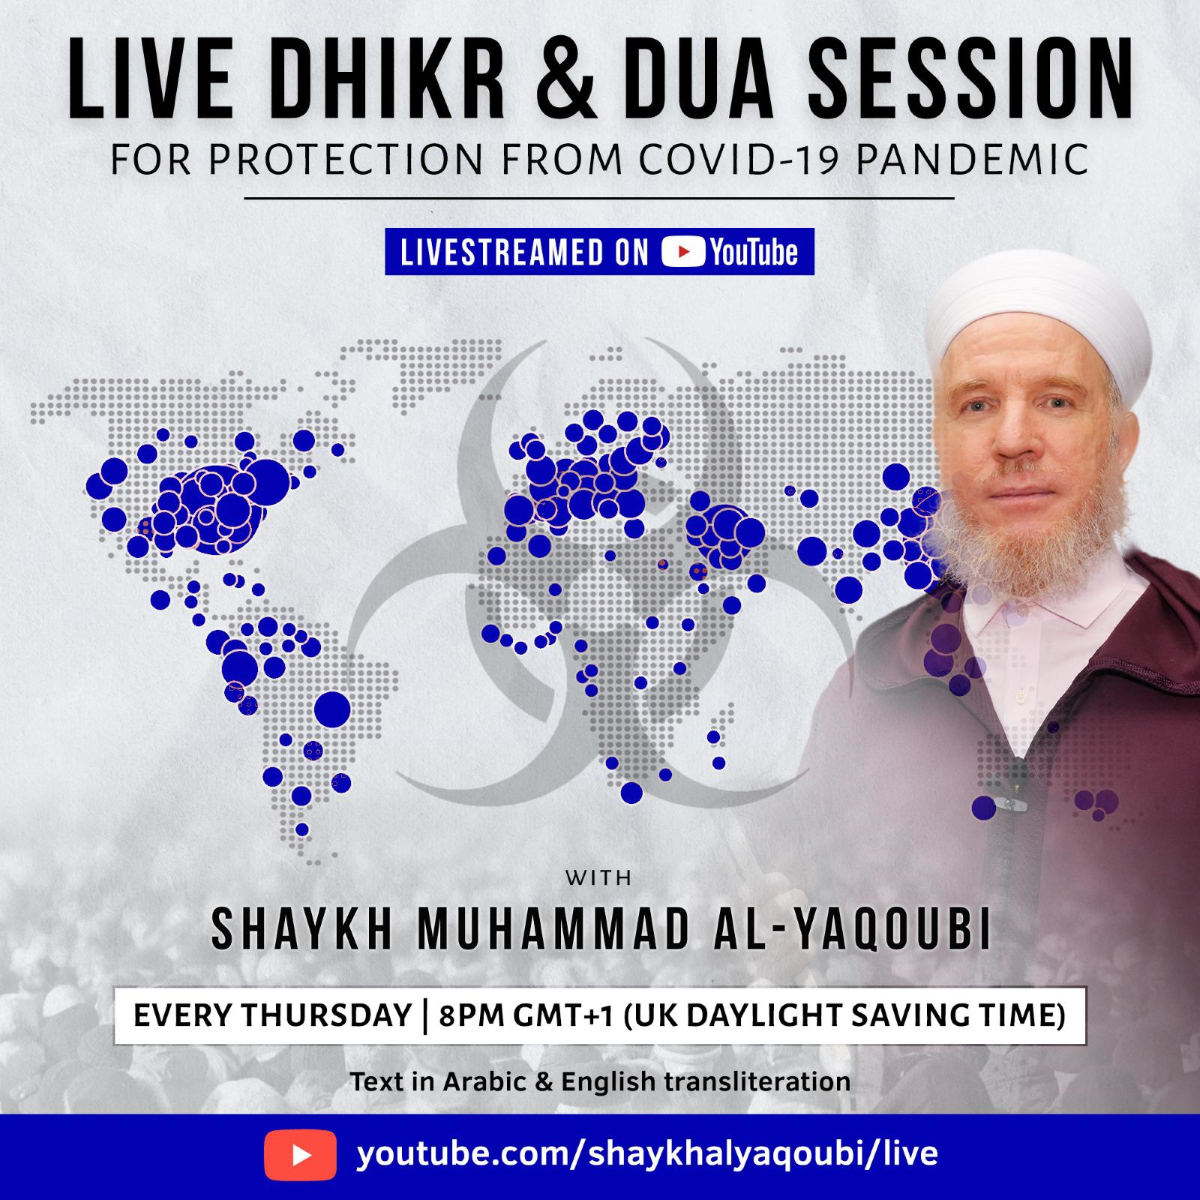 Live Dhikr & Du'a for protection from COVID-19 pandemic